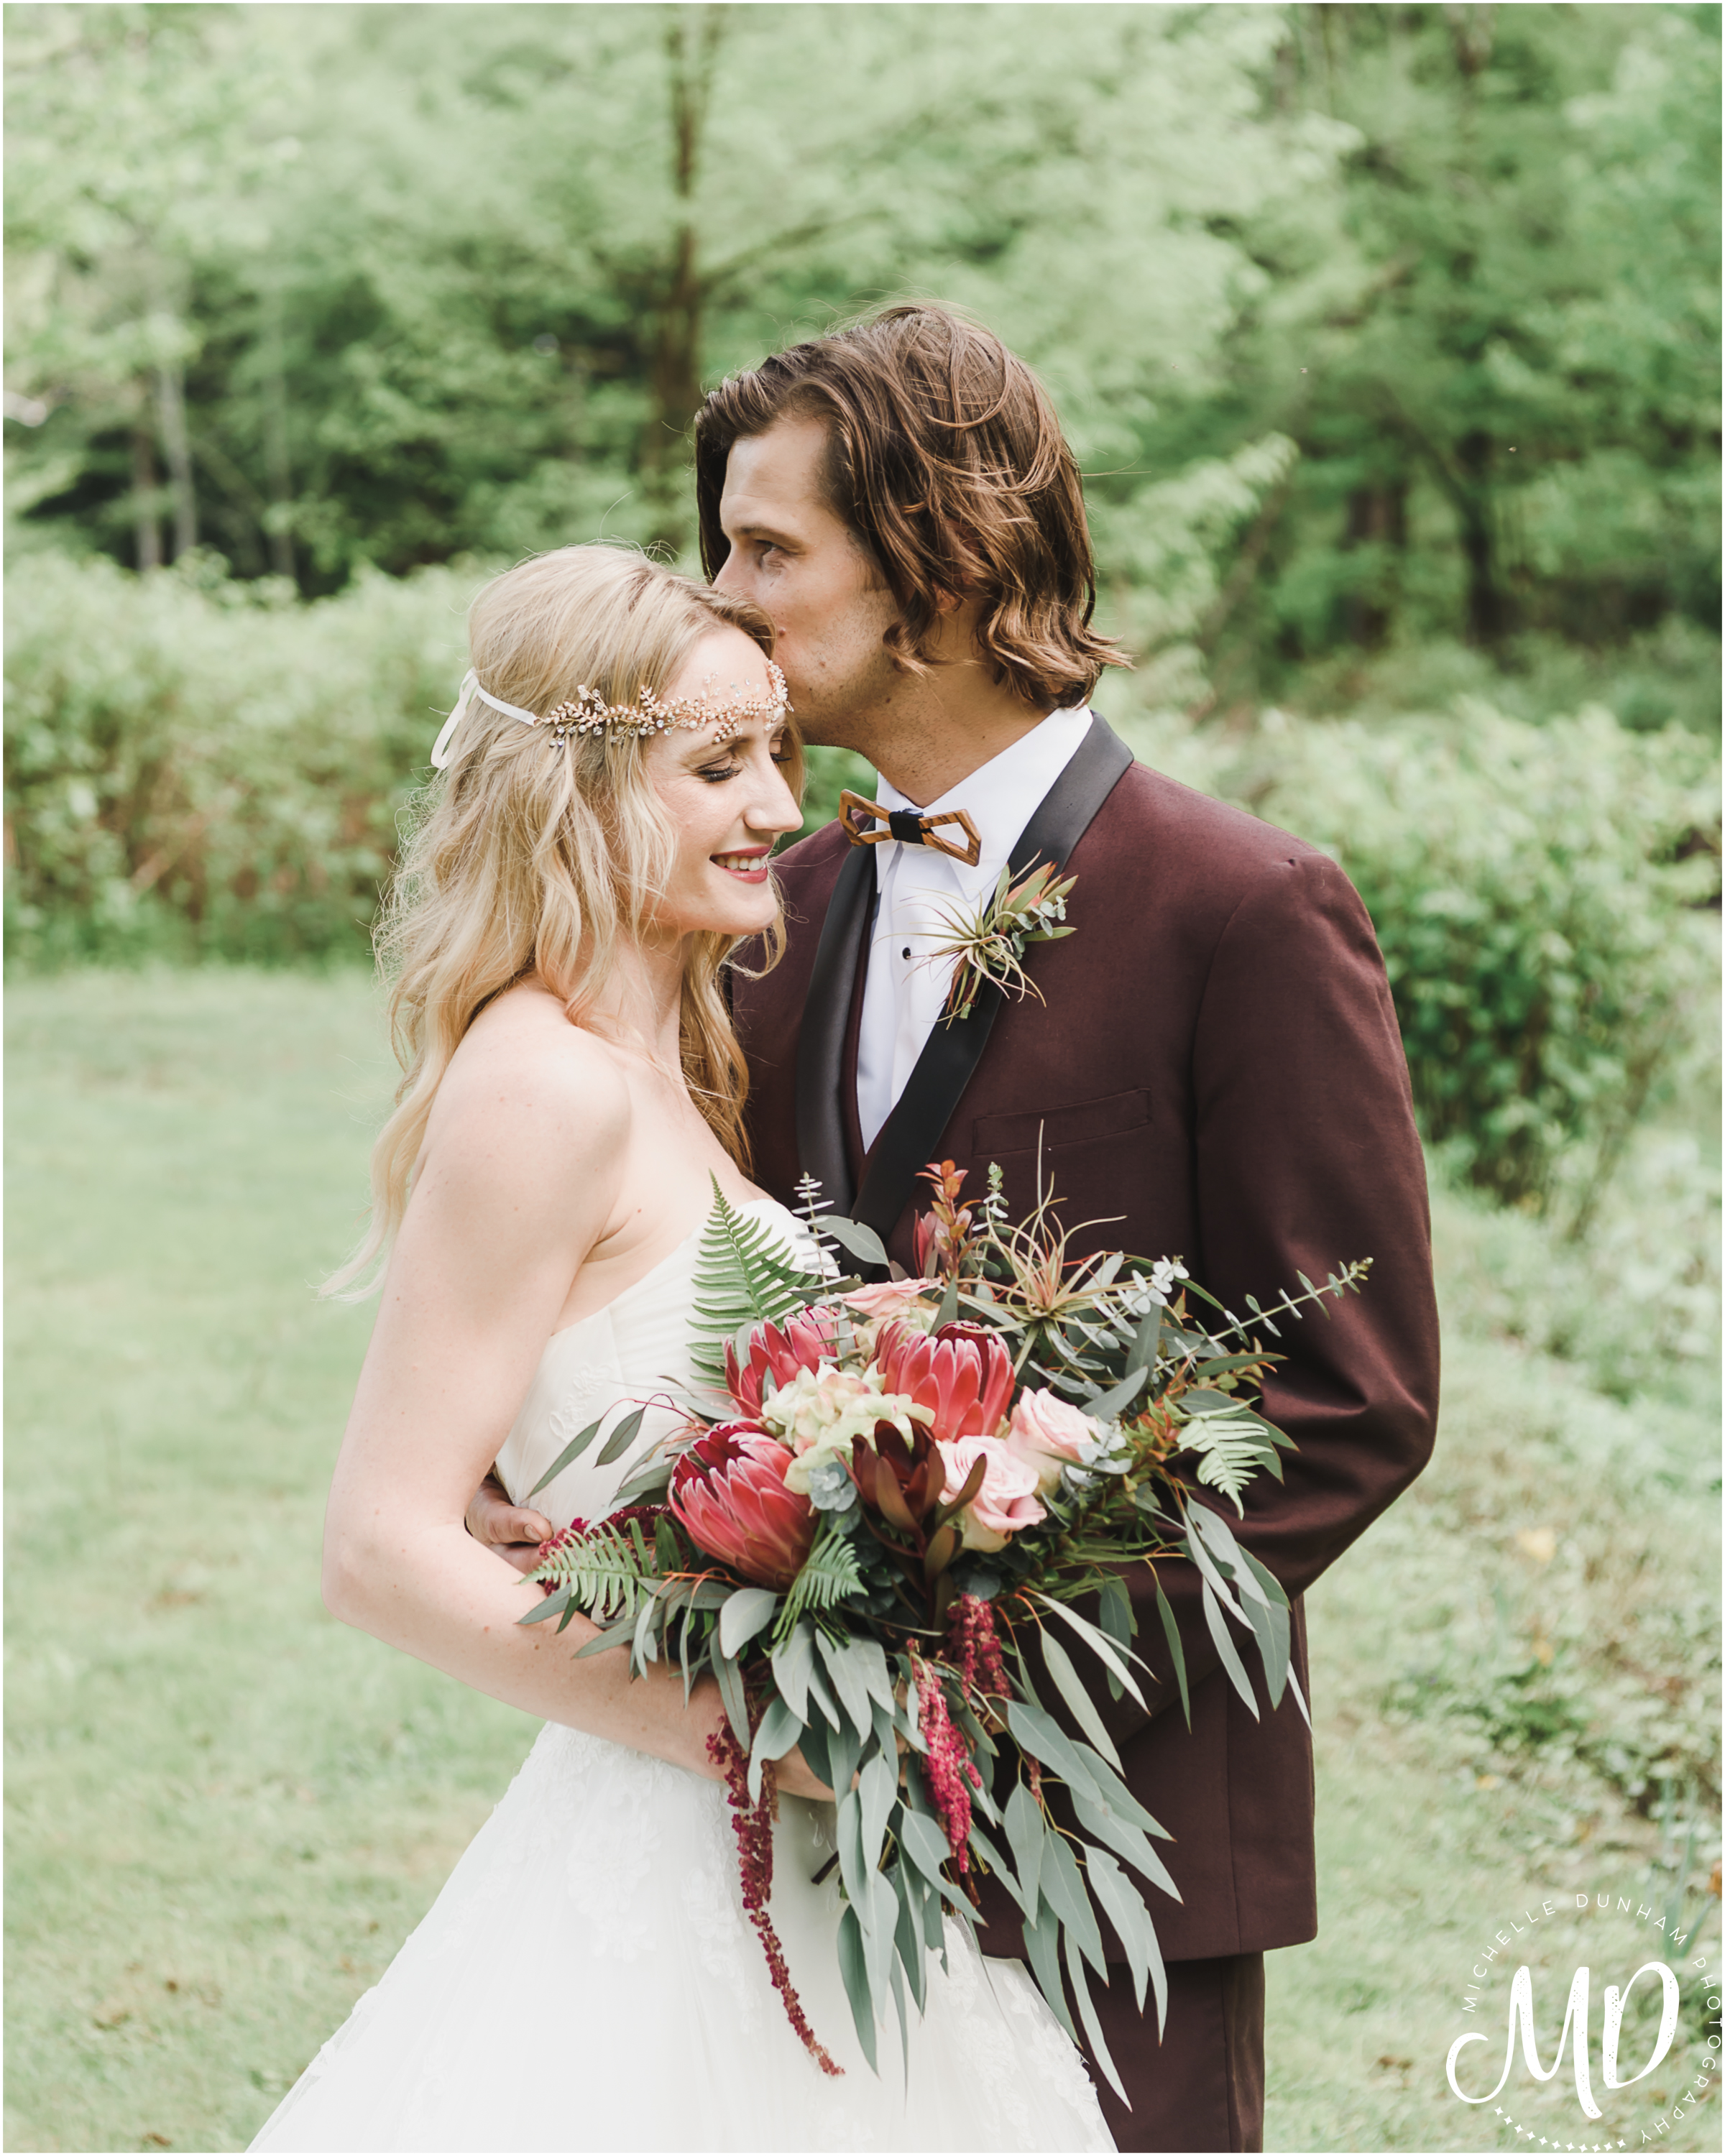 Michelle Dunham Photography_Boho_BrideandGroom_9.jpg